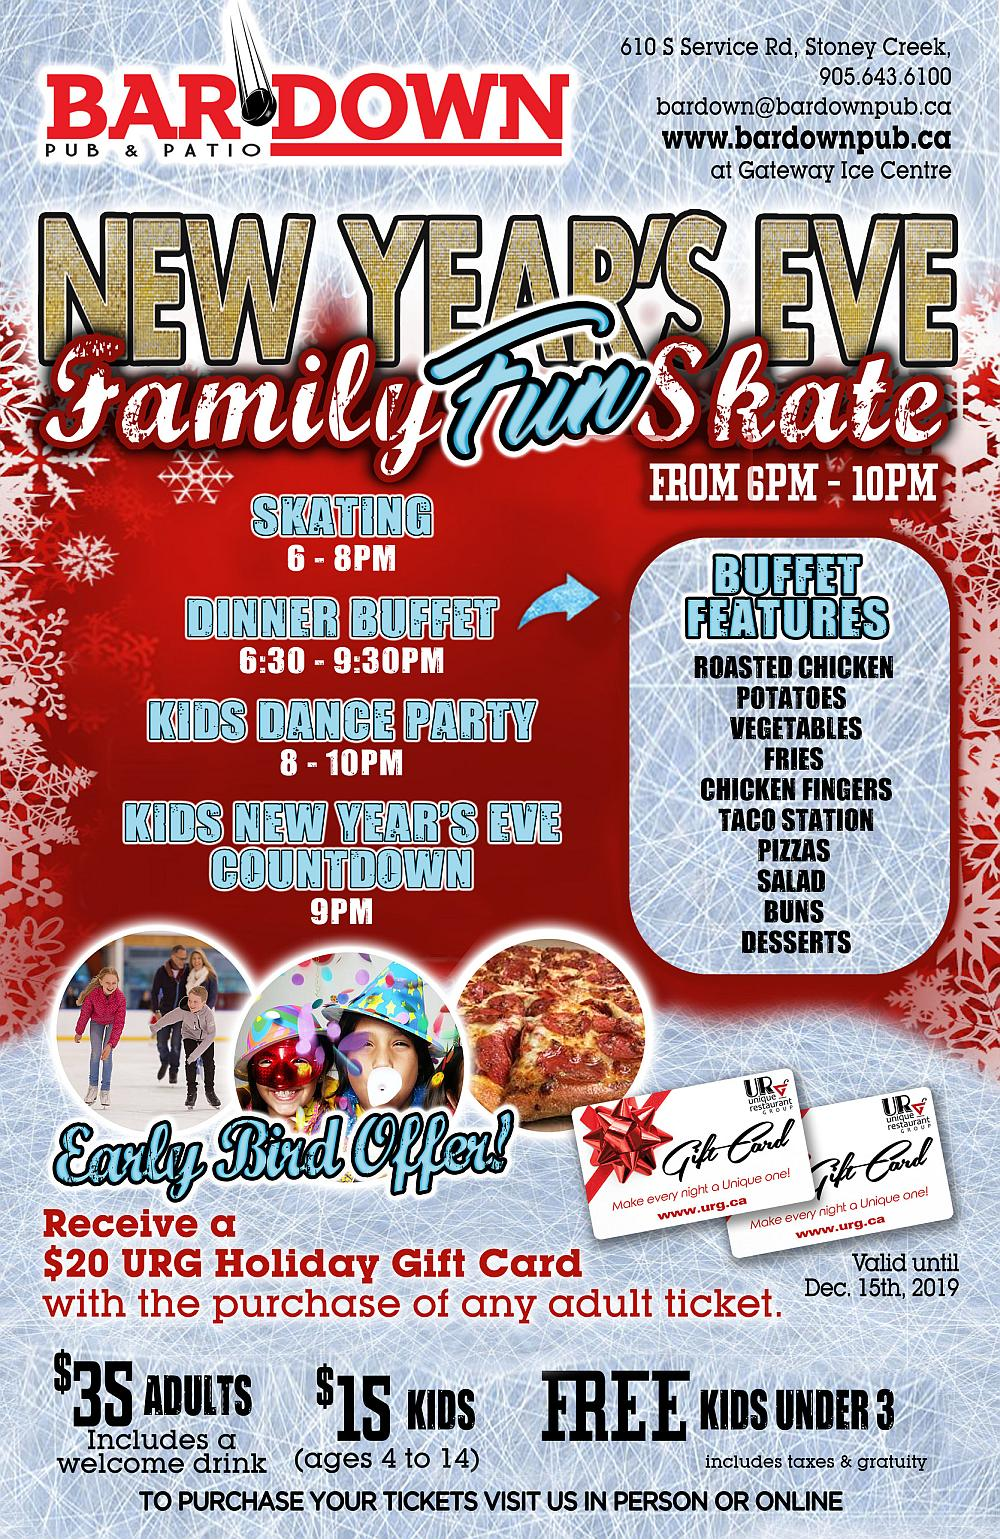 New Years Eve at Bardown Pub - Family Skate, Buffet, Kids Dance Party, Countdown - Tuesday December 31st, 2019